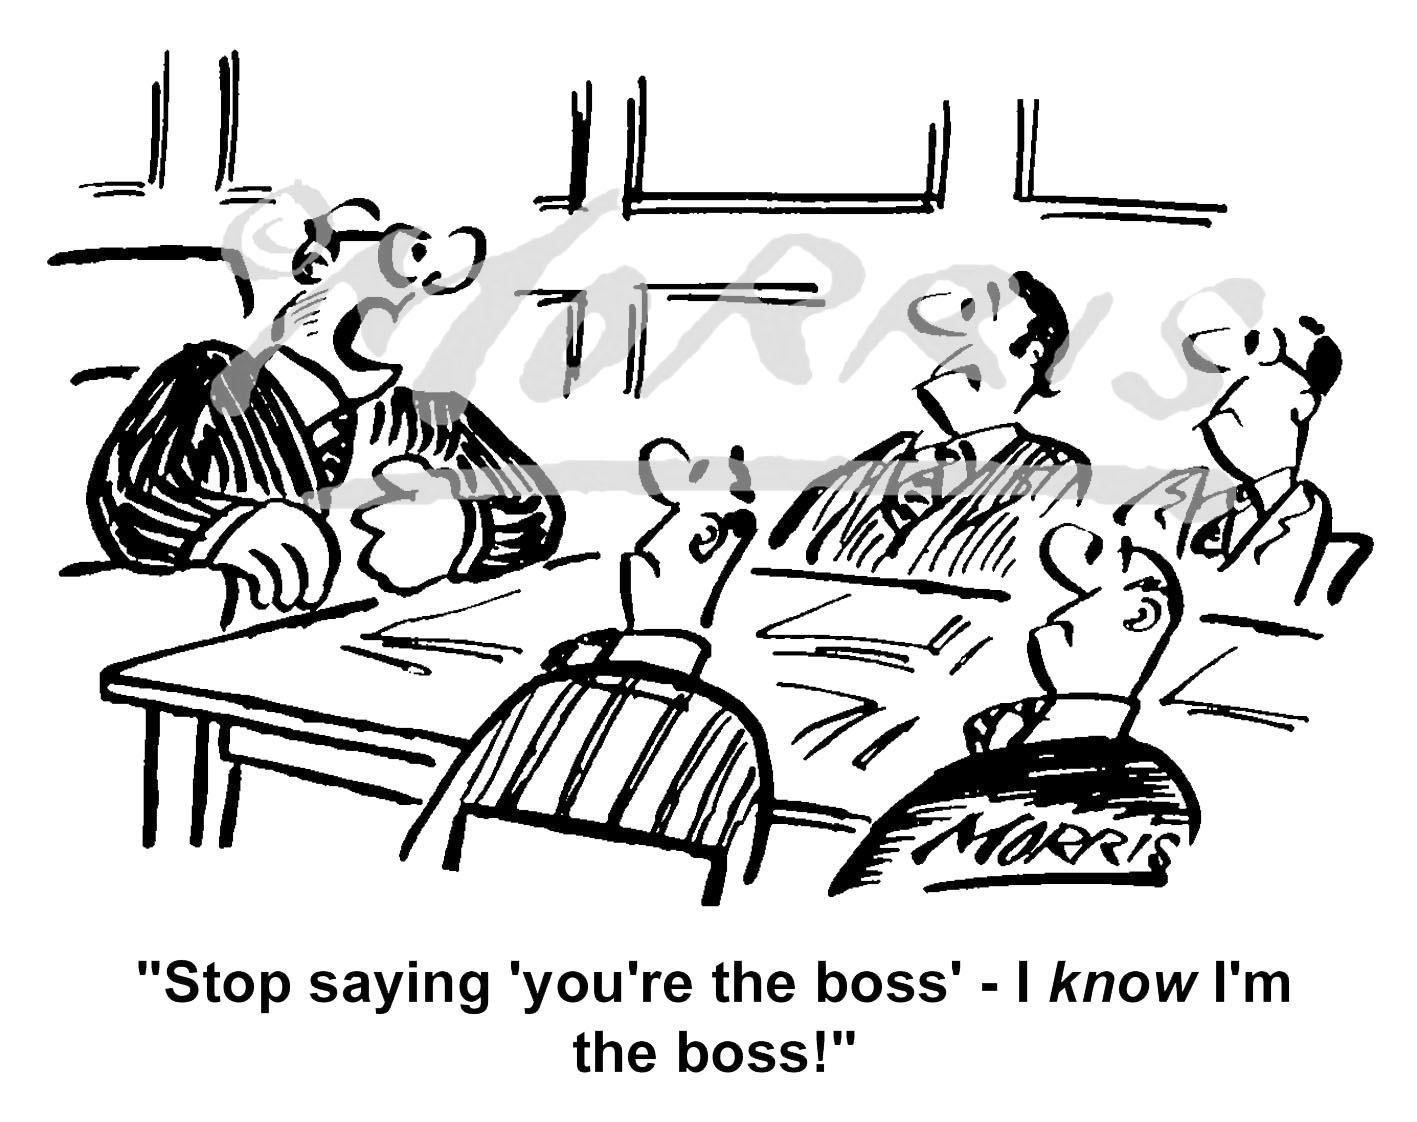 Boss cartoon, boardroom cartoon – Ref: 1506bw